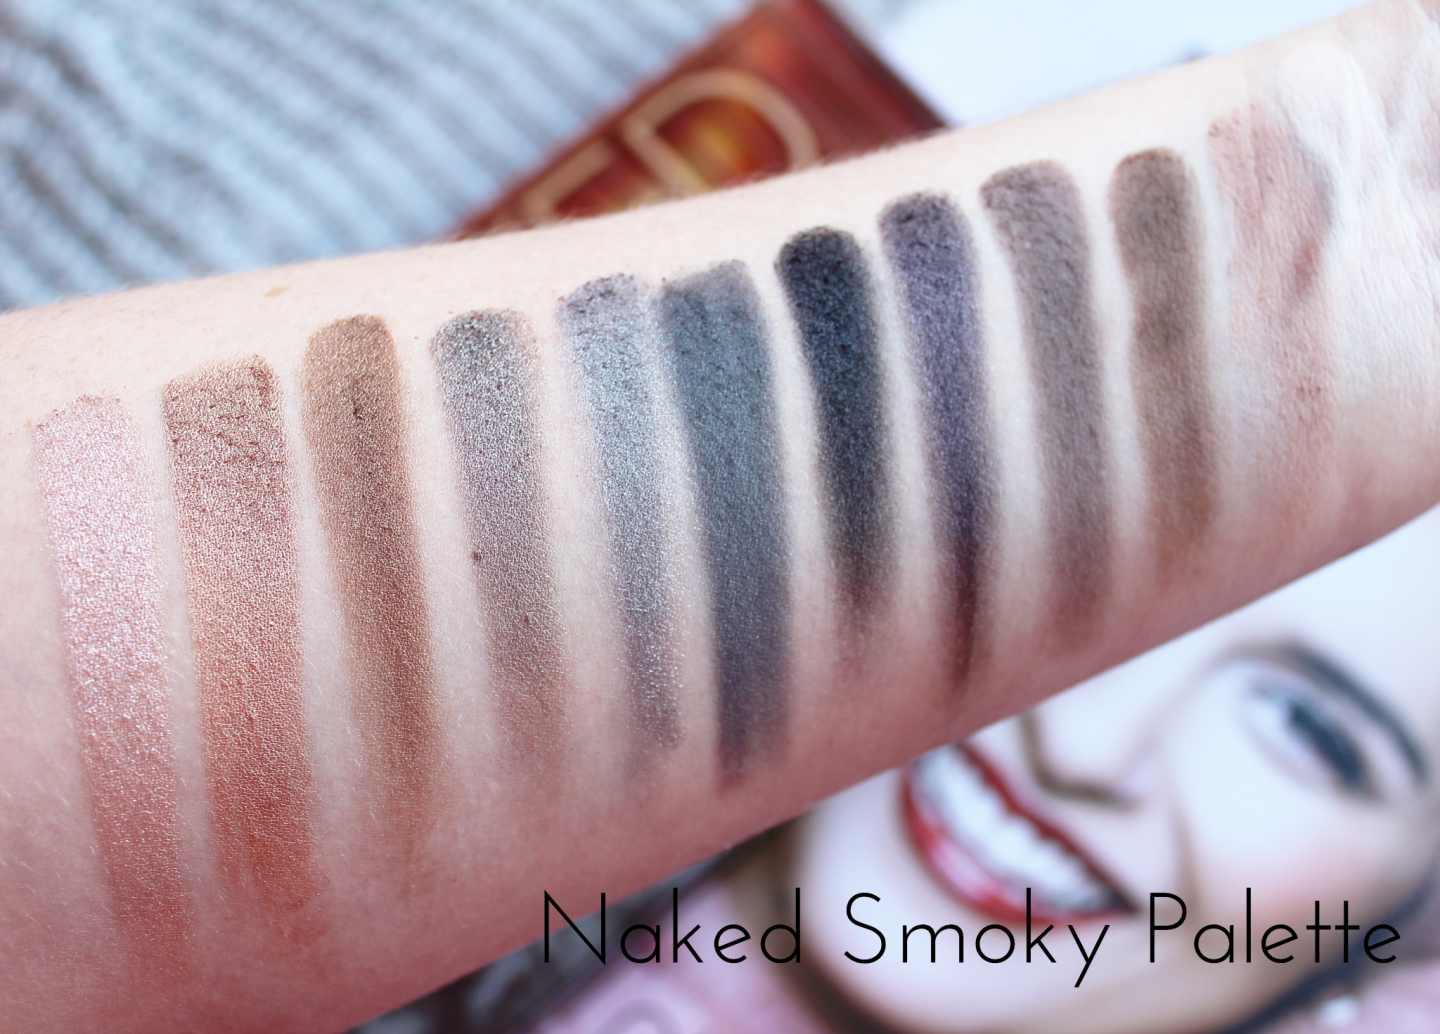 Urban Decay Naked Eyeshadow Palette Collection Swatched - Smoky